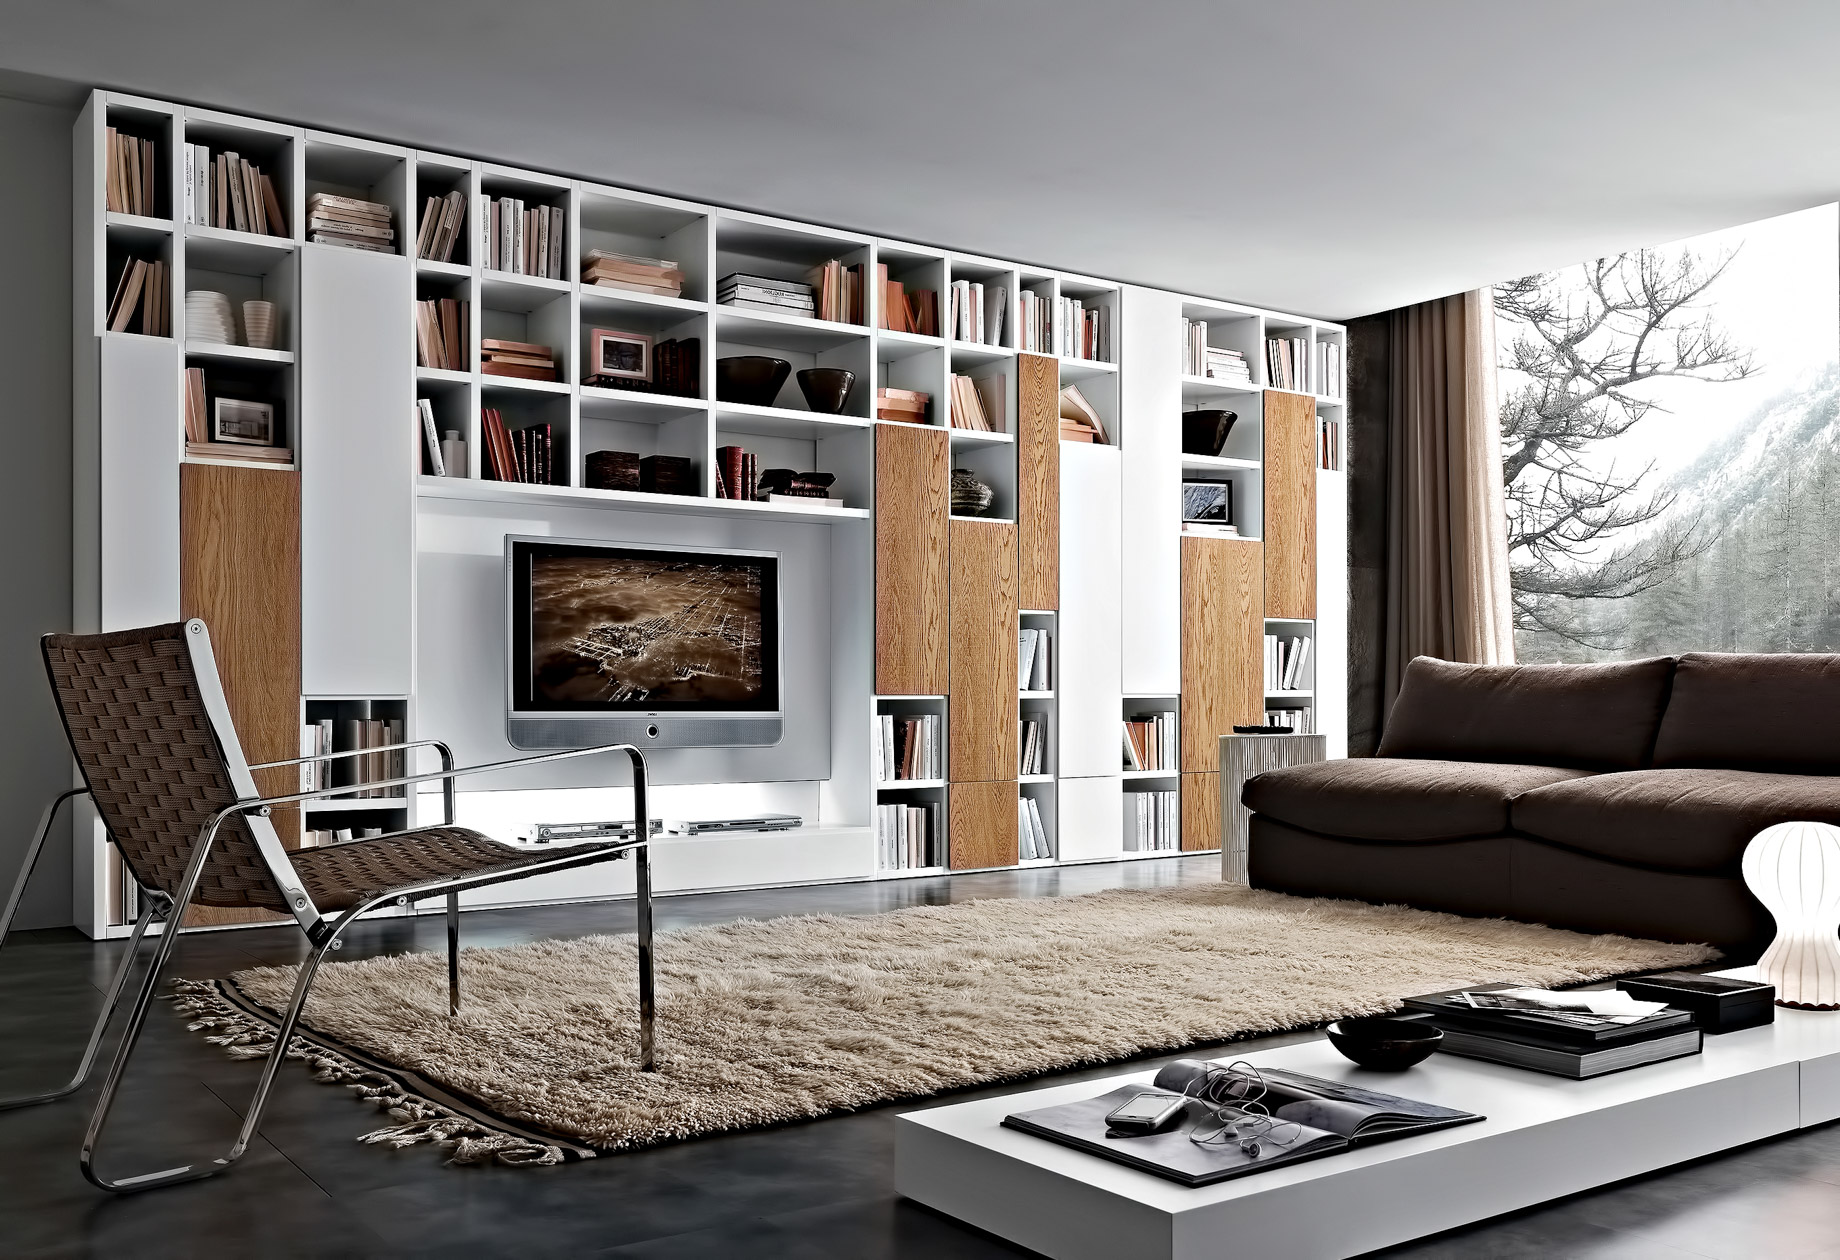 Luxury Home Trends Finding The Perfect Cabinets And Bookcases The Pinnacle List